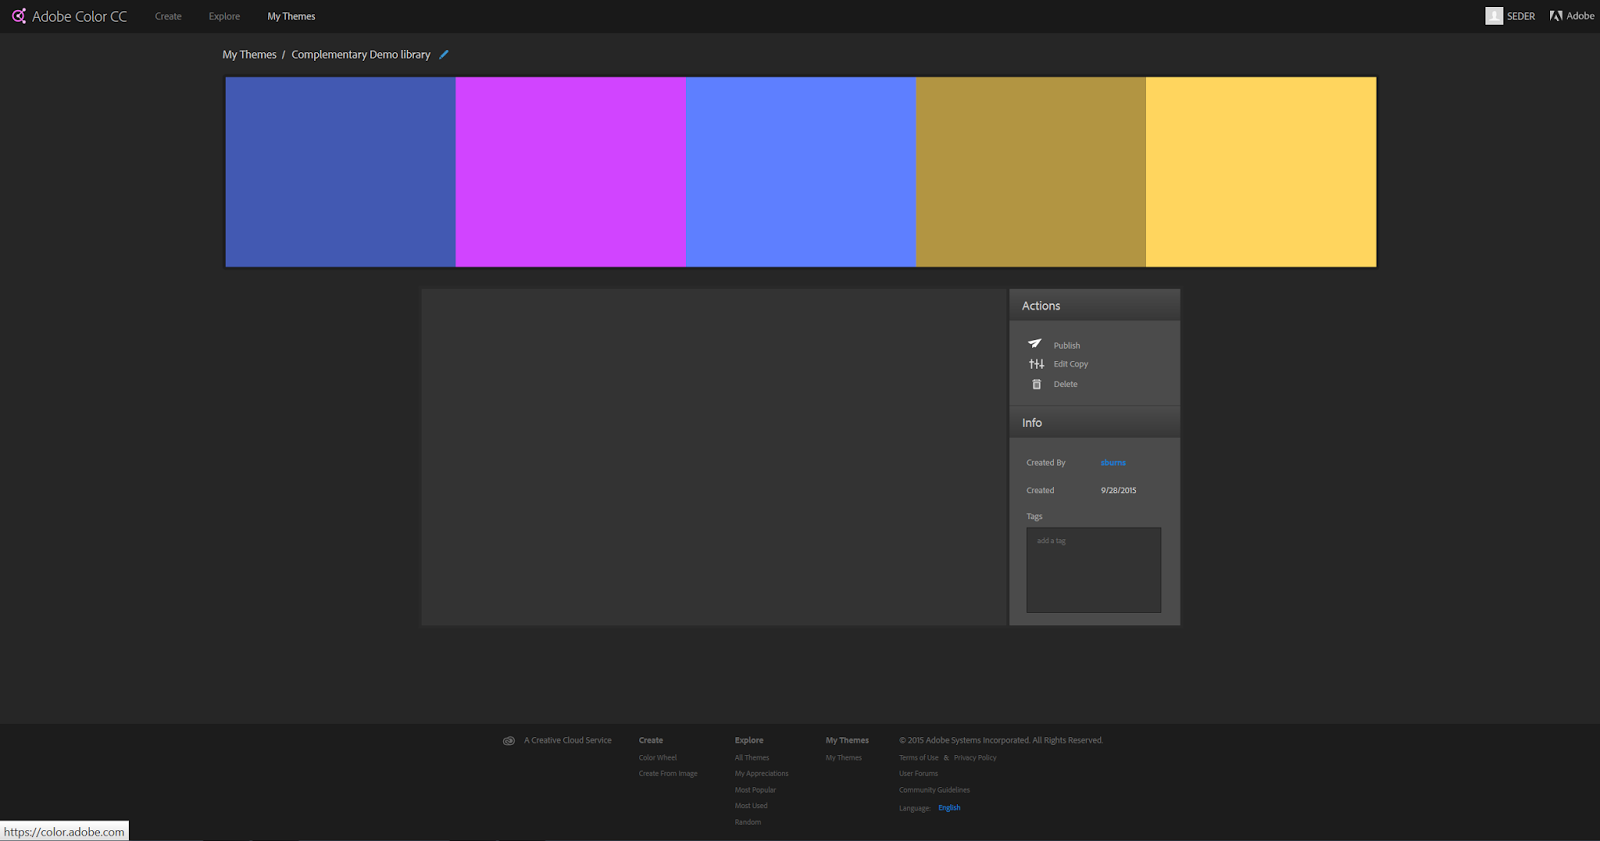 Color adobe online - I Strongly Encourage You To Use Adobe Color To Create A Color Scheme For Your Map You Can Save Your Color Theme To Your Library